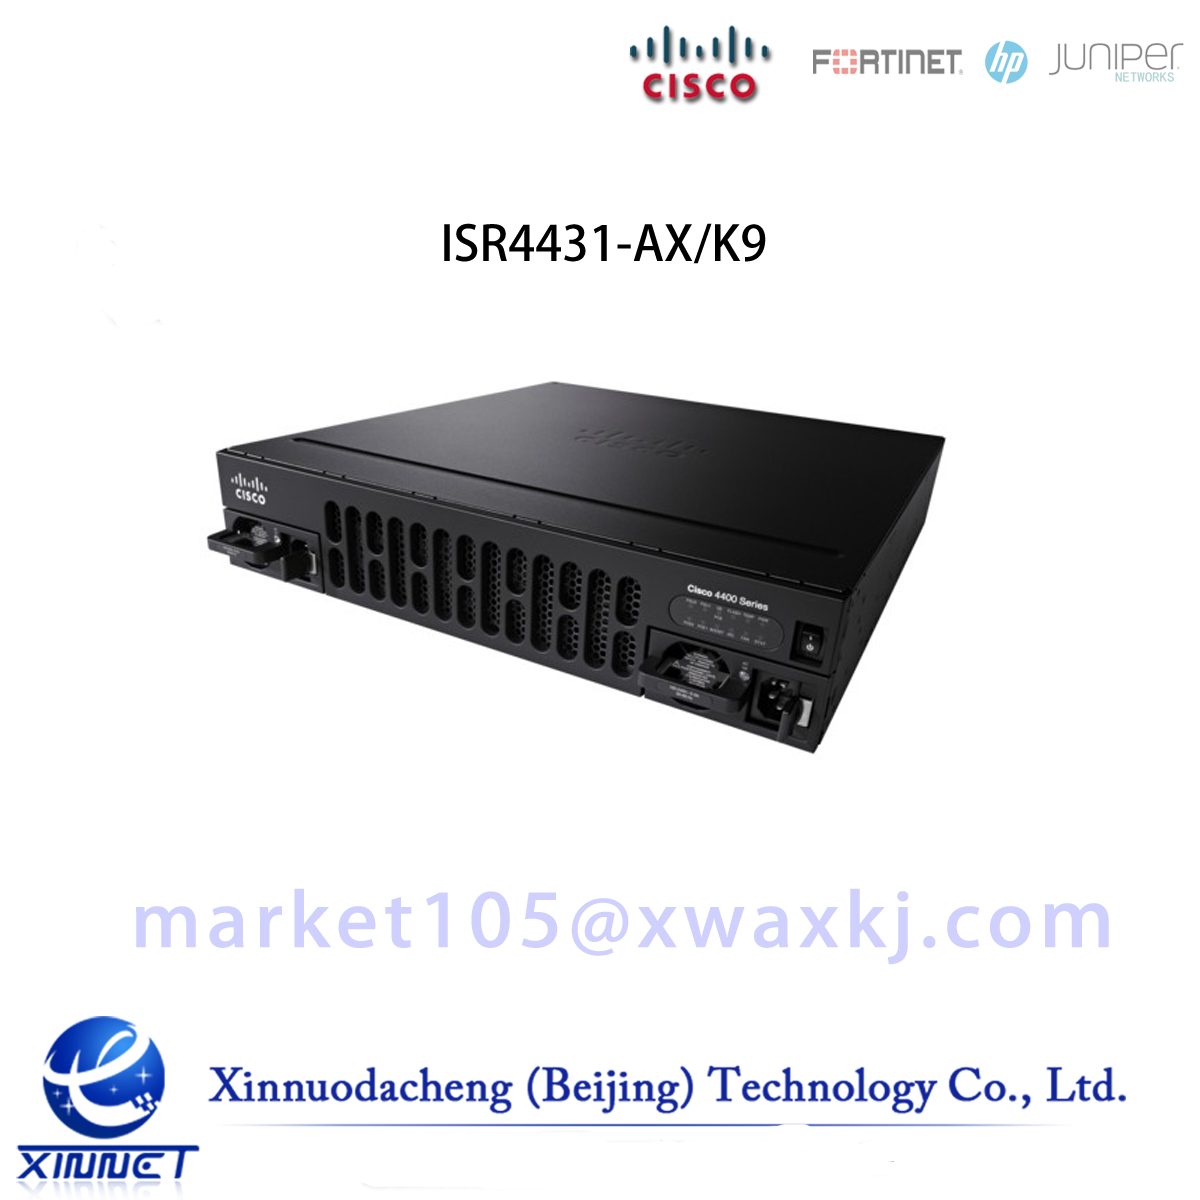 Cisco ISR 4431 AX Bundle with APP and SEC license ISR4431-AX/K9 FOB Reference Price:Get Latest Price